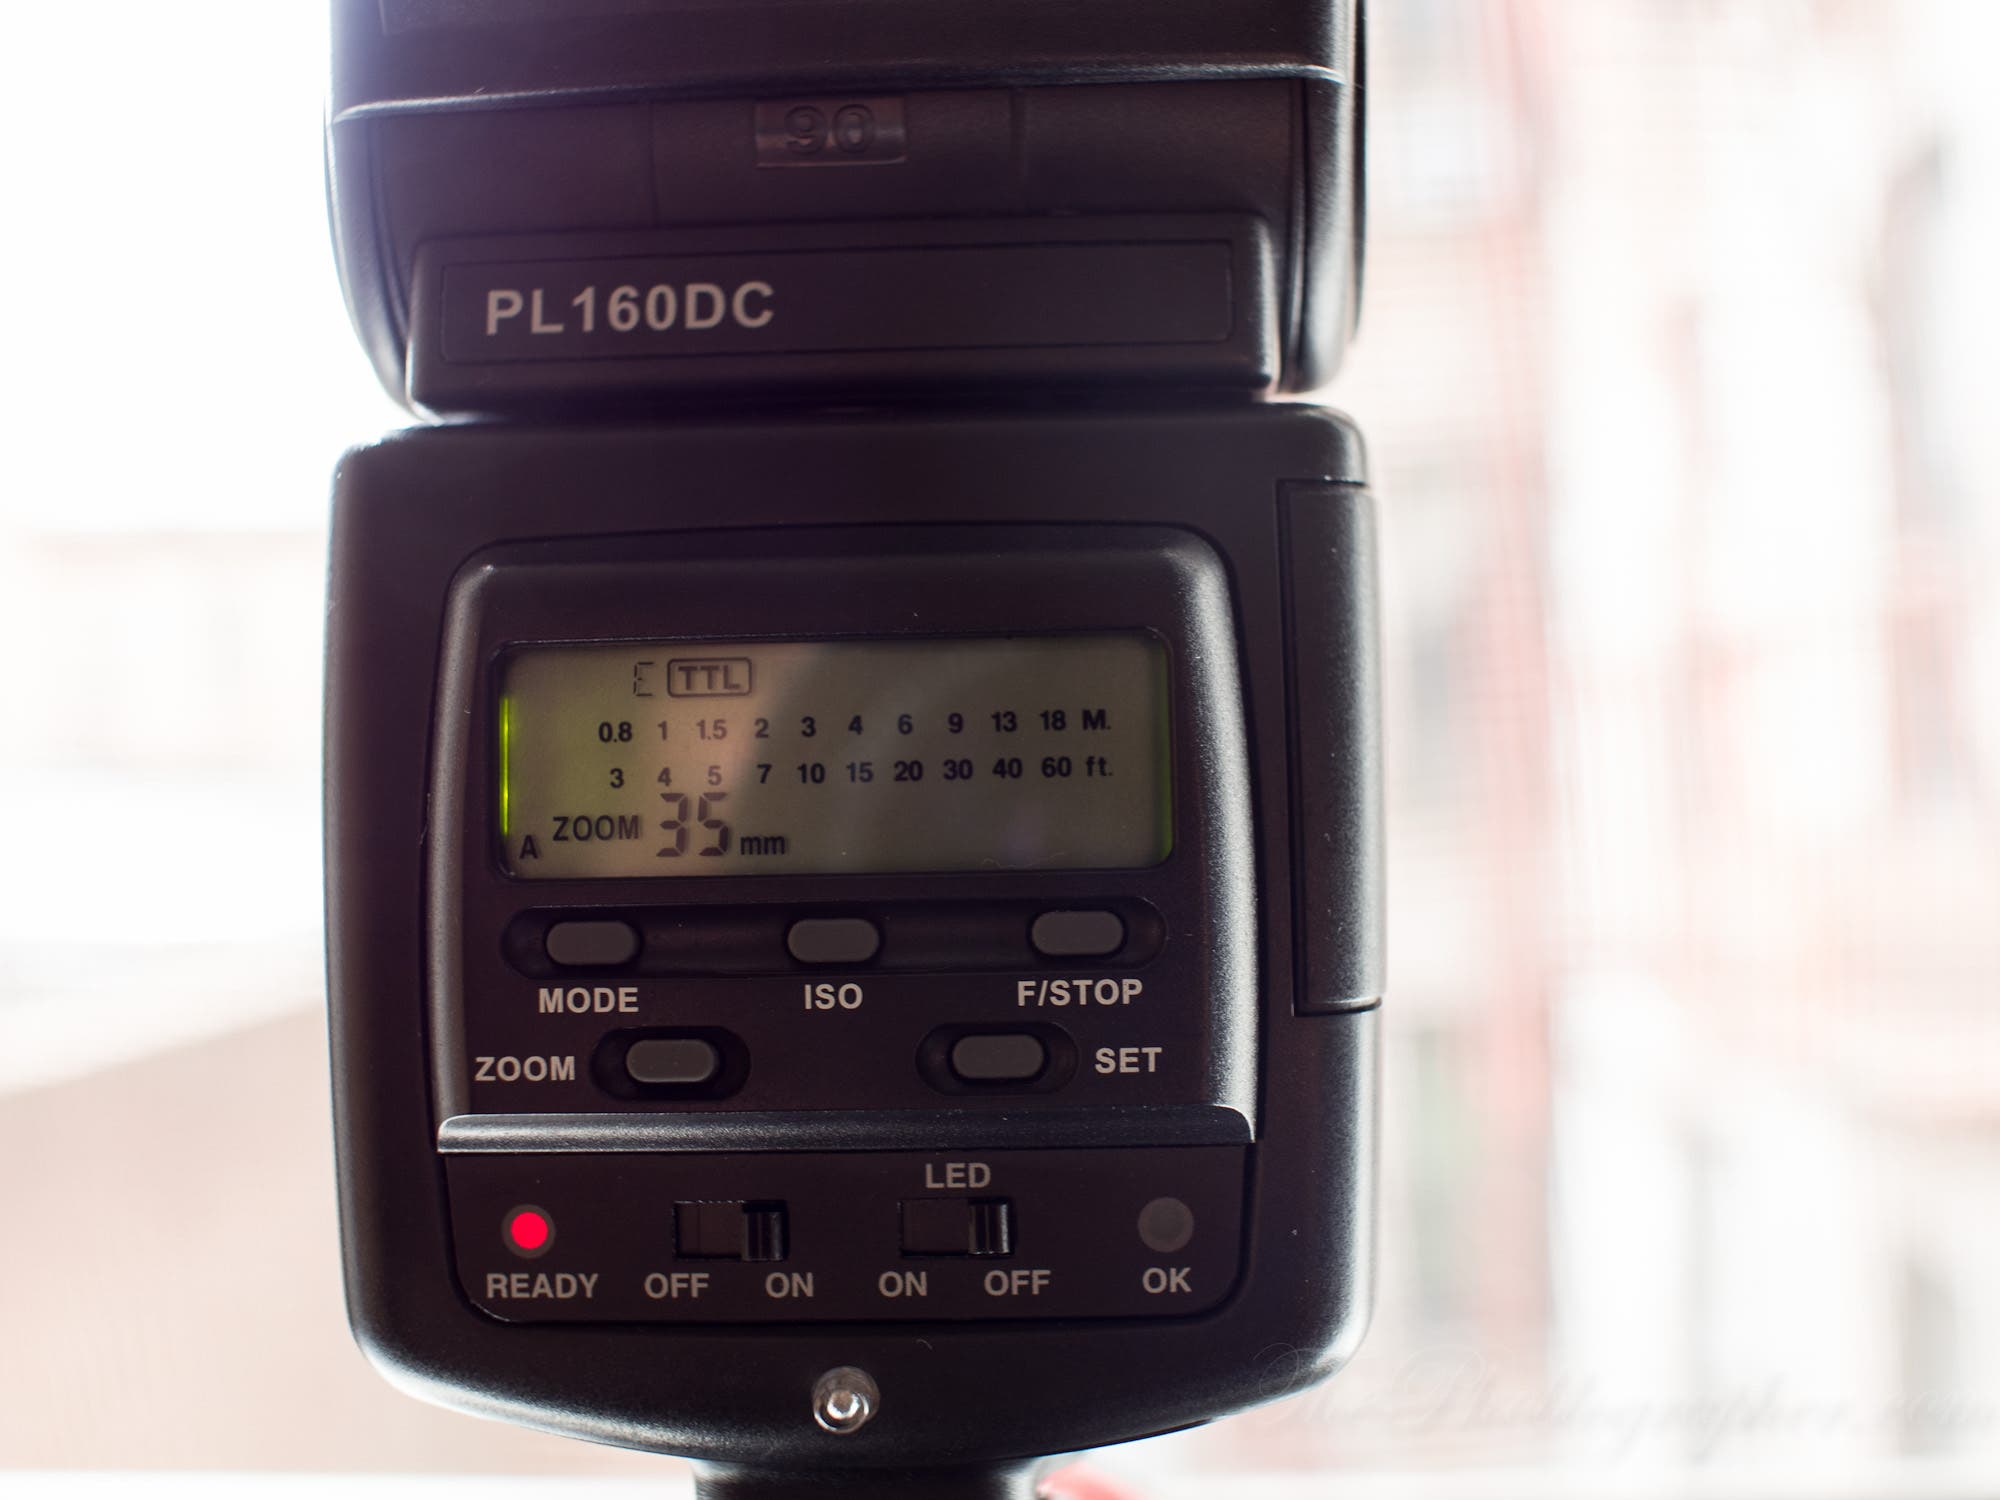 The Canon Photographer's Guide To Upgrading Your Equipment – Part III: Flashes and Lights